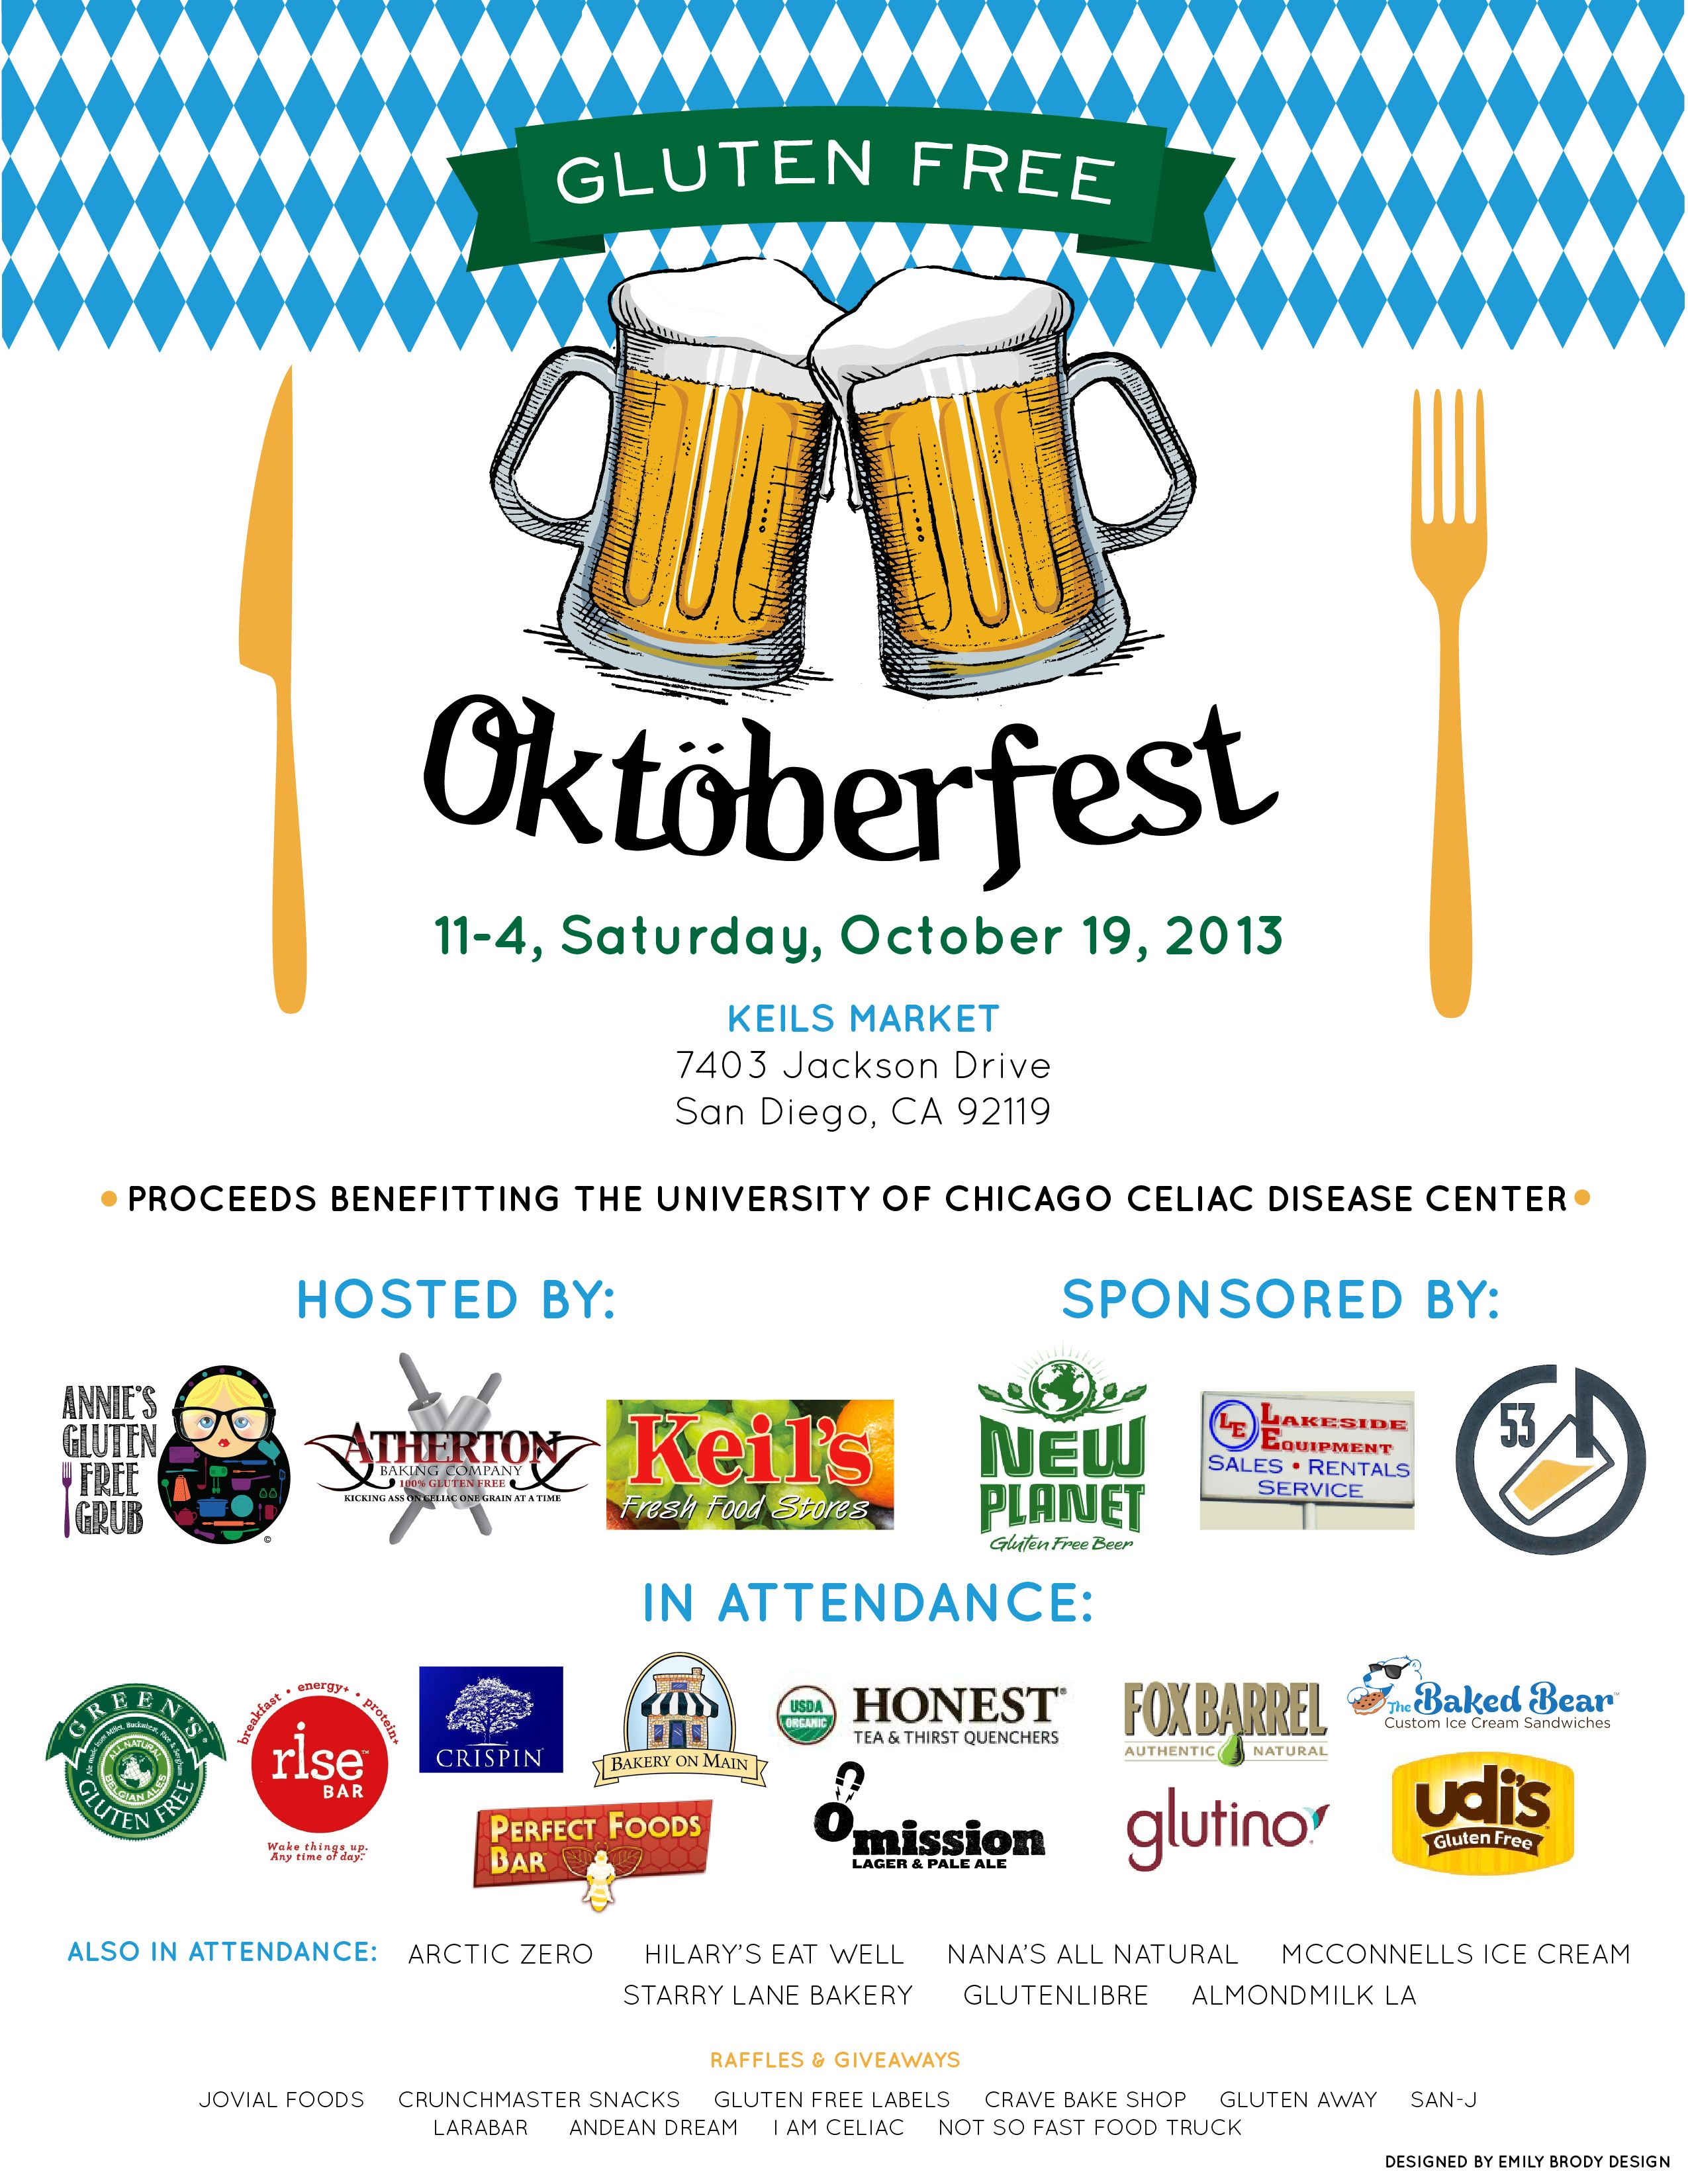 Gluten free oktoberfest in san diego october 19th gf beer food gluten free oktoberfest in san diego october gf beer food products raffles prizes all funds raised to to the university of chicago celiac disease negle Gallery